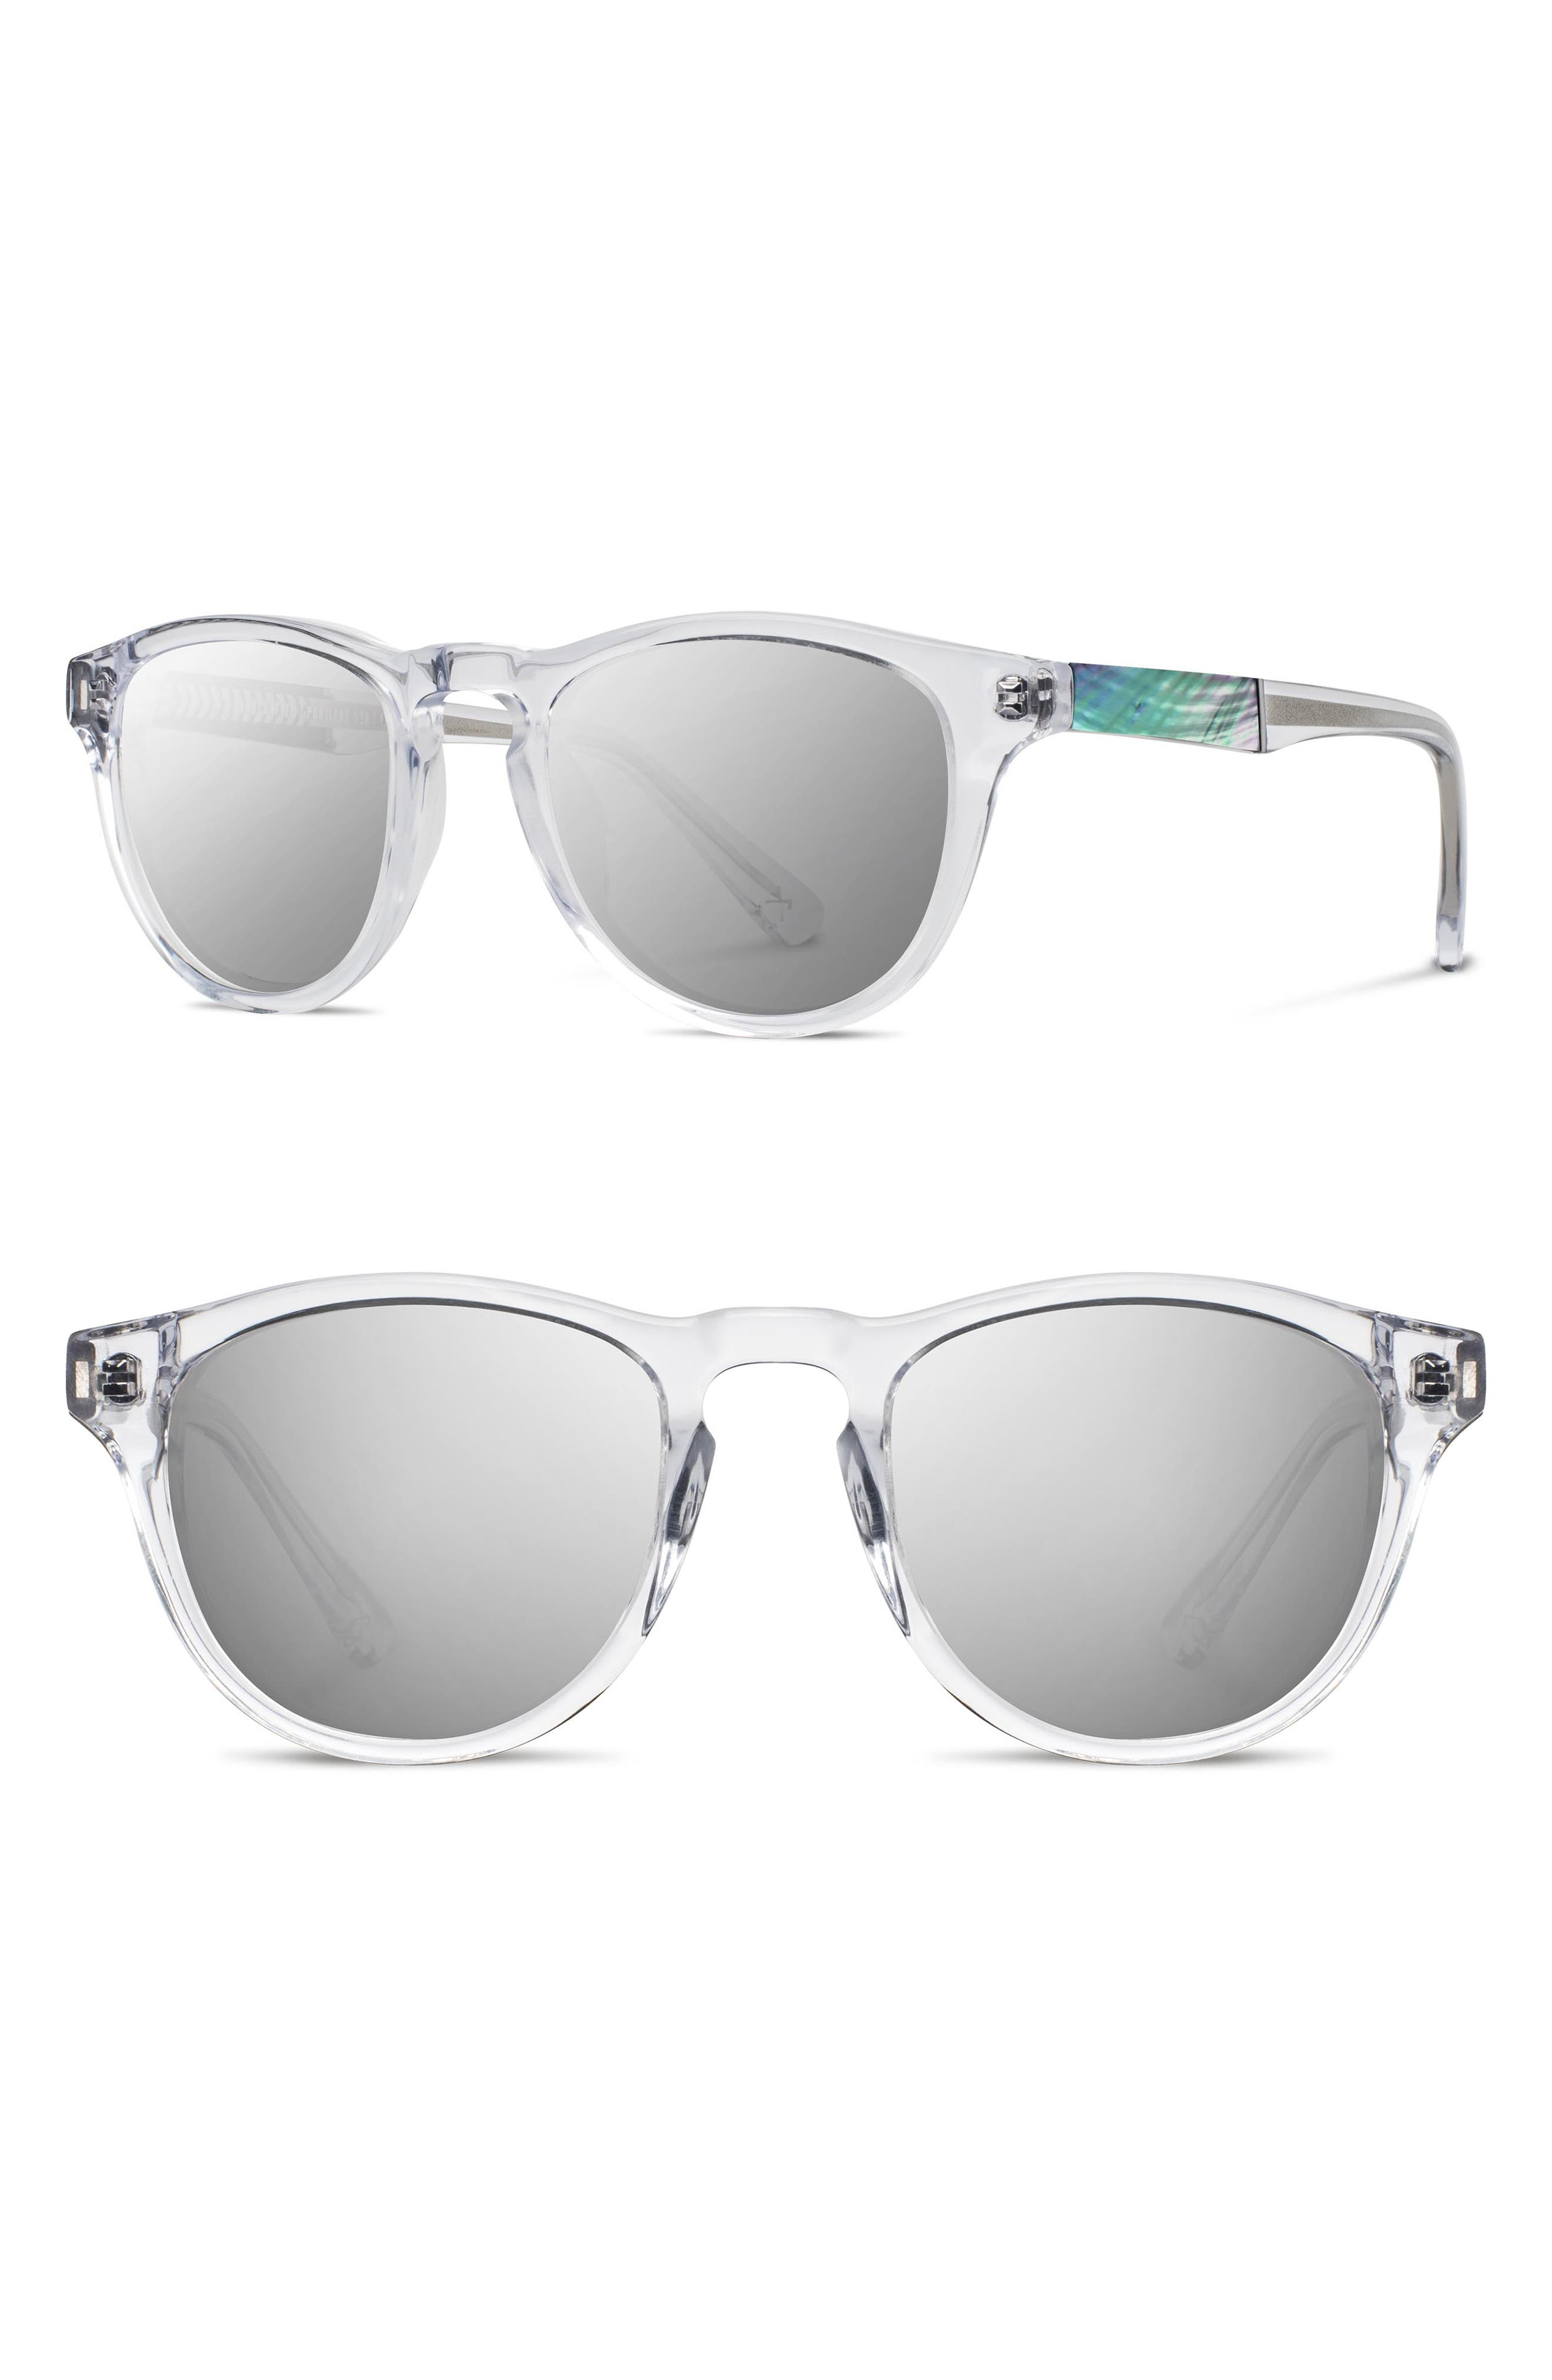 Shwood Ace 4m Sunglasses - Crystal/ Abalone Shell/ Silver